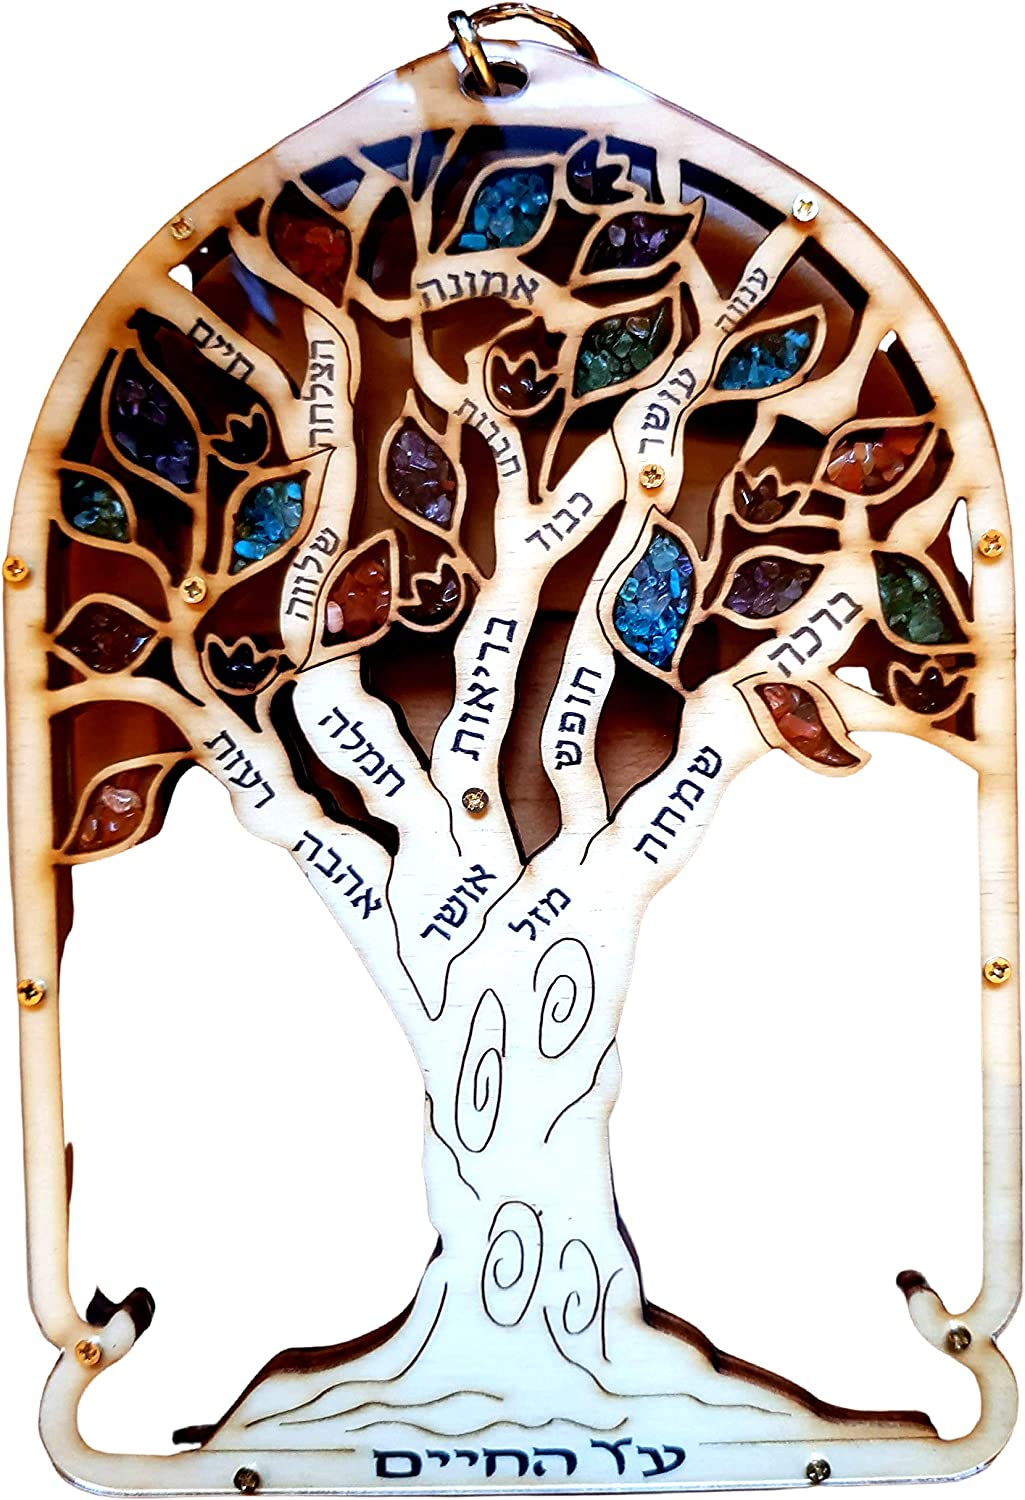 Hebrew Blessing for the Home. Bluenoemi Israel Gifts Blessings Tree of Life Wall Hanging Gift Hebrew Housewarming.